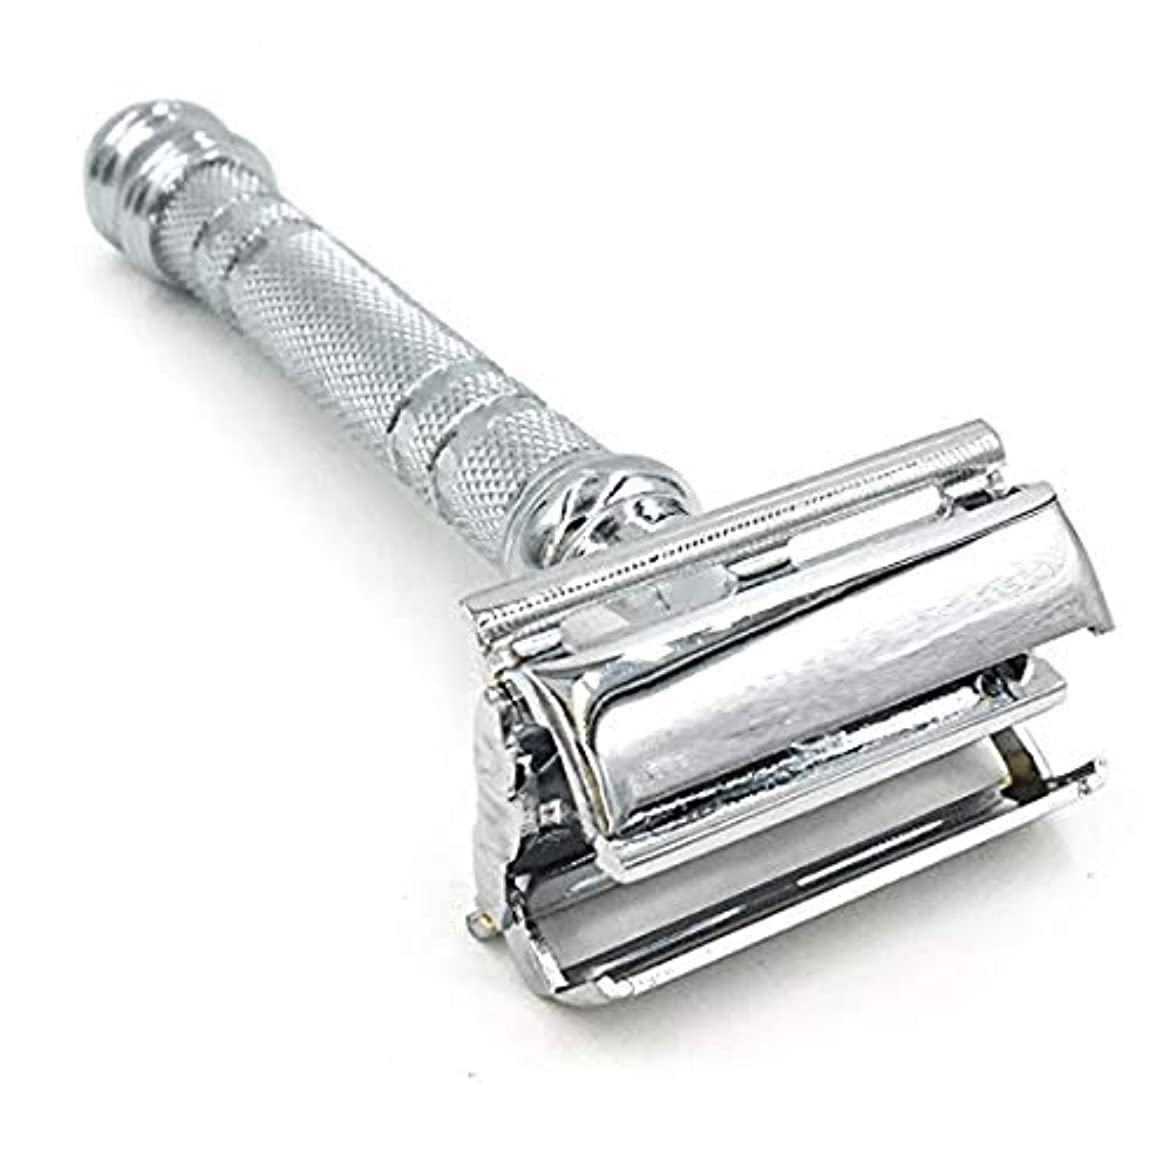 虚弱見分ける偏差Parker 66R Butterfly Open Double Edge Safety Razor - Super Heavyweight - Brand New for 2016 by Parker Safety Razor